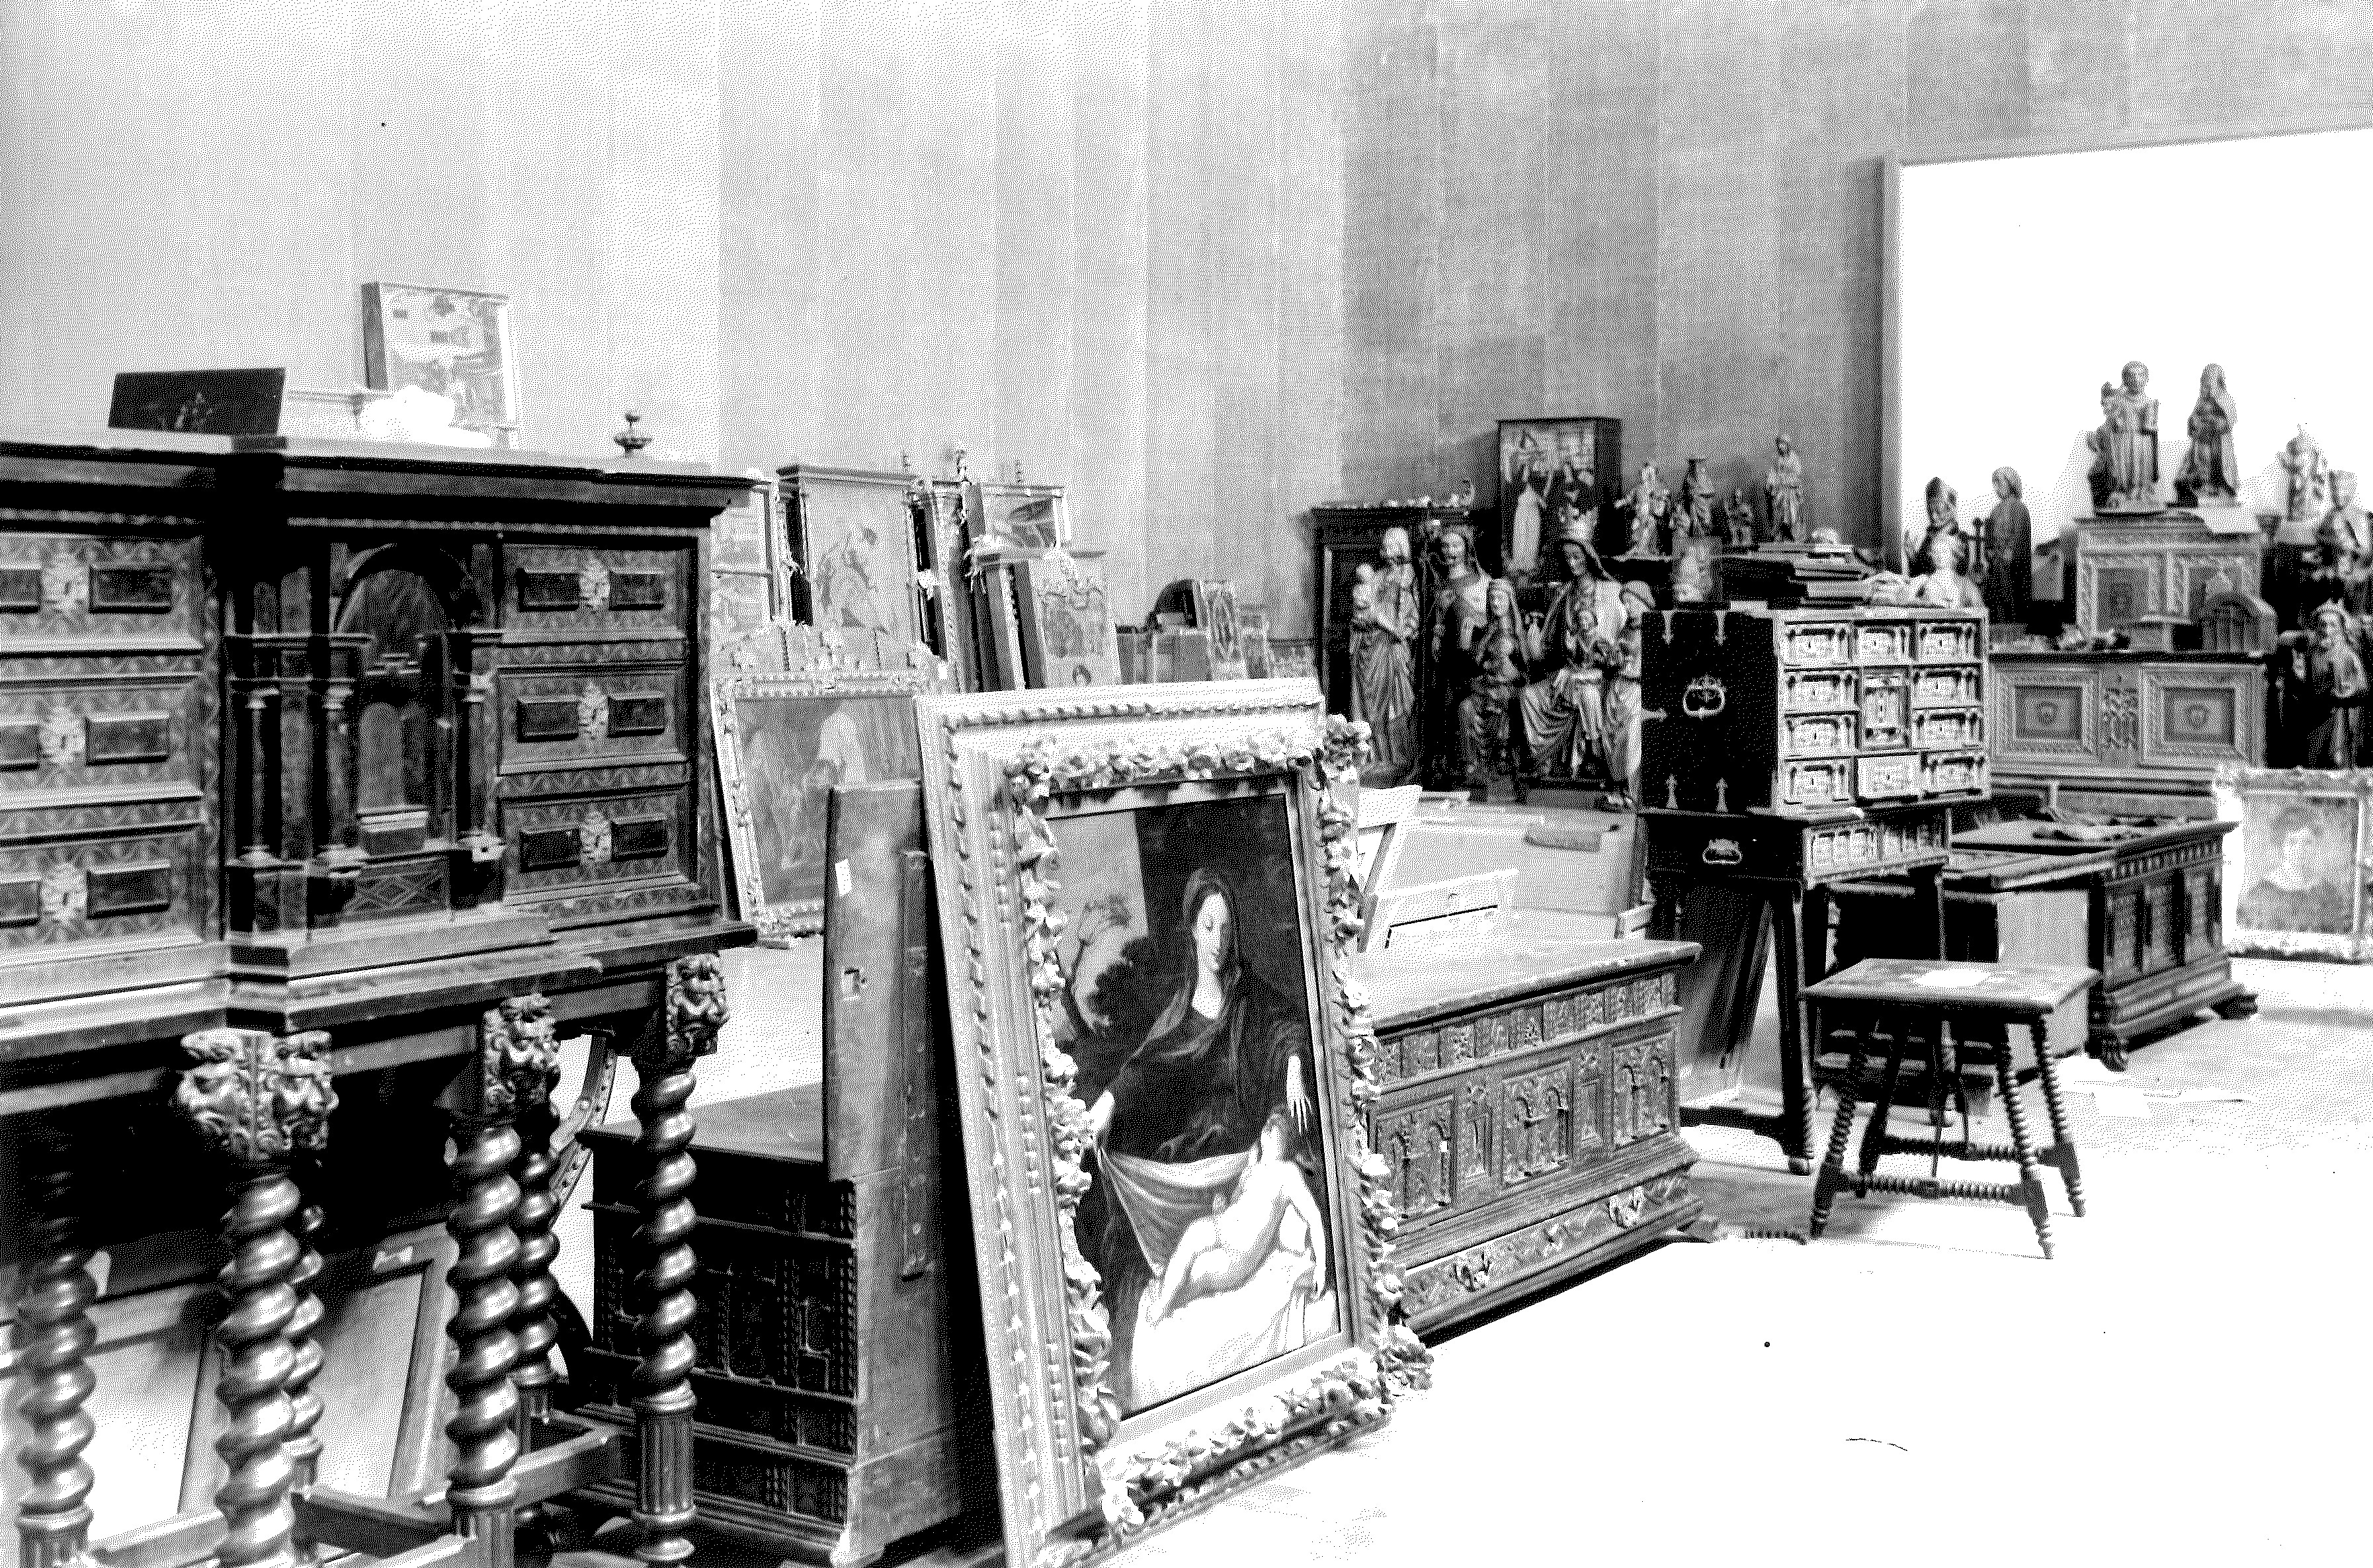 Objects placed together in one of the rooms of the Palau Nacional in 1936